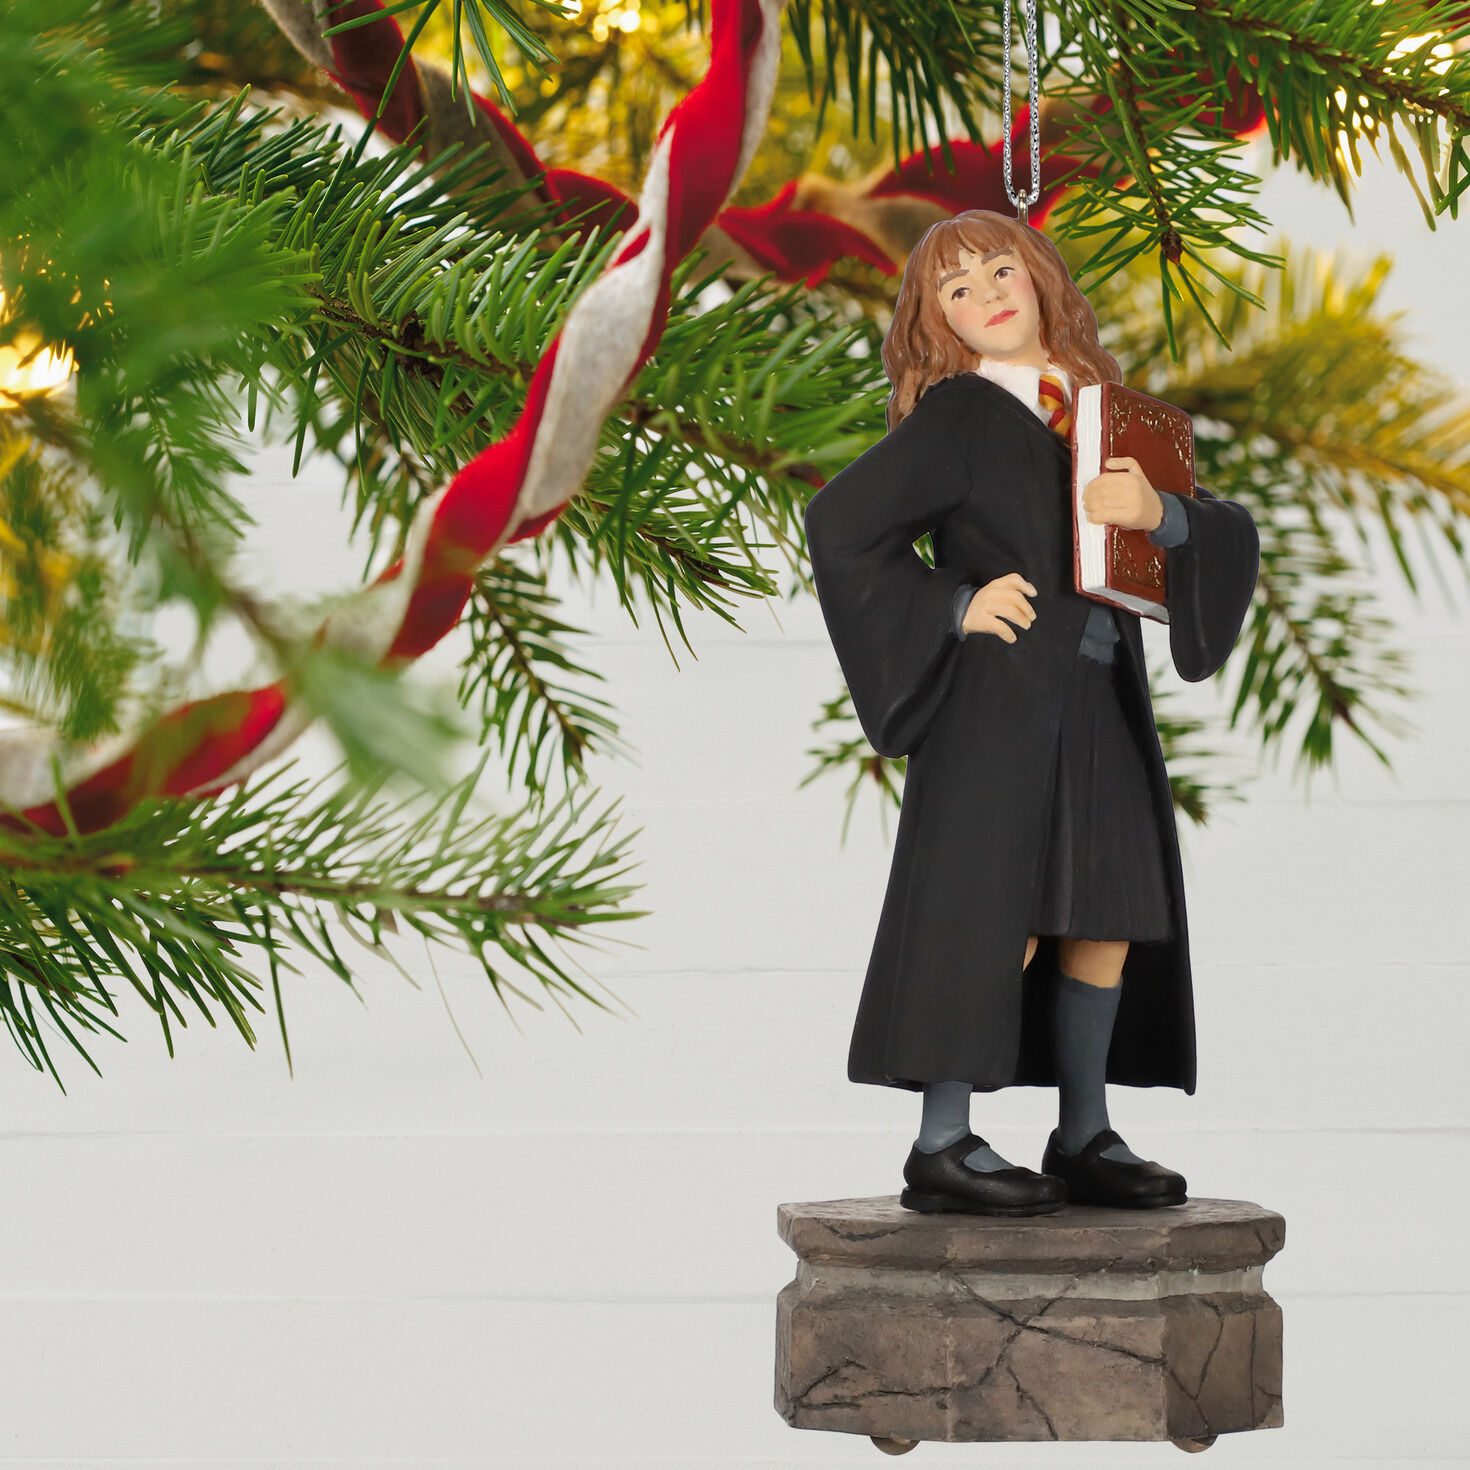 Harry Potter Hermione Christmas Ornament New